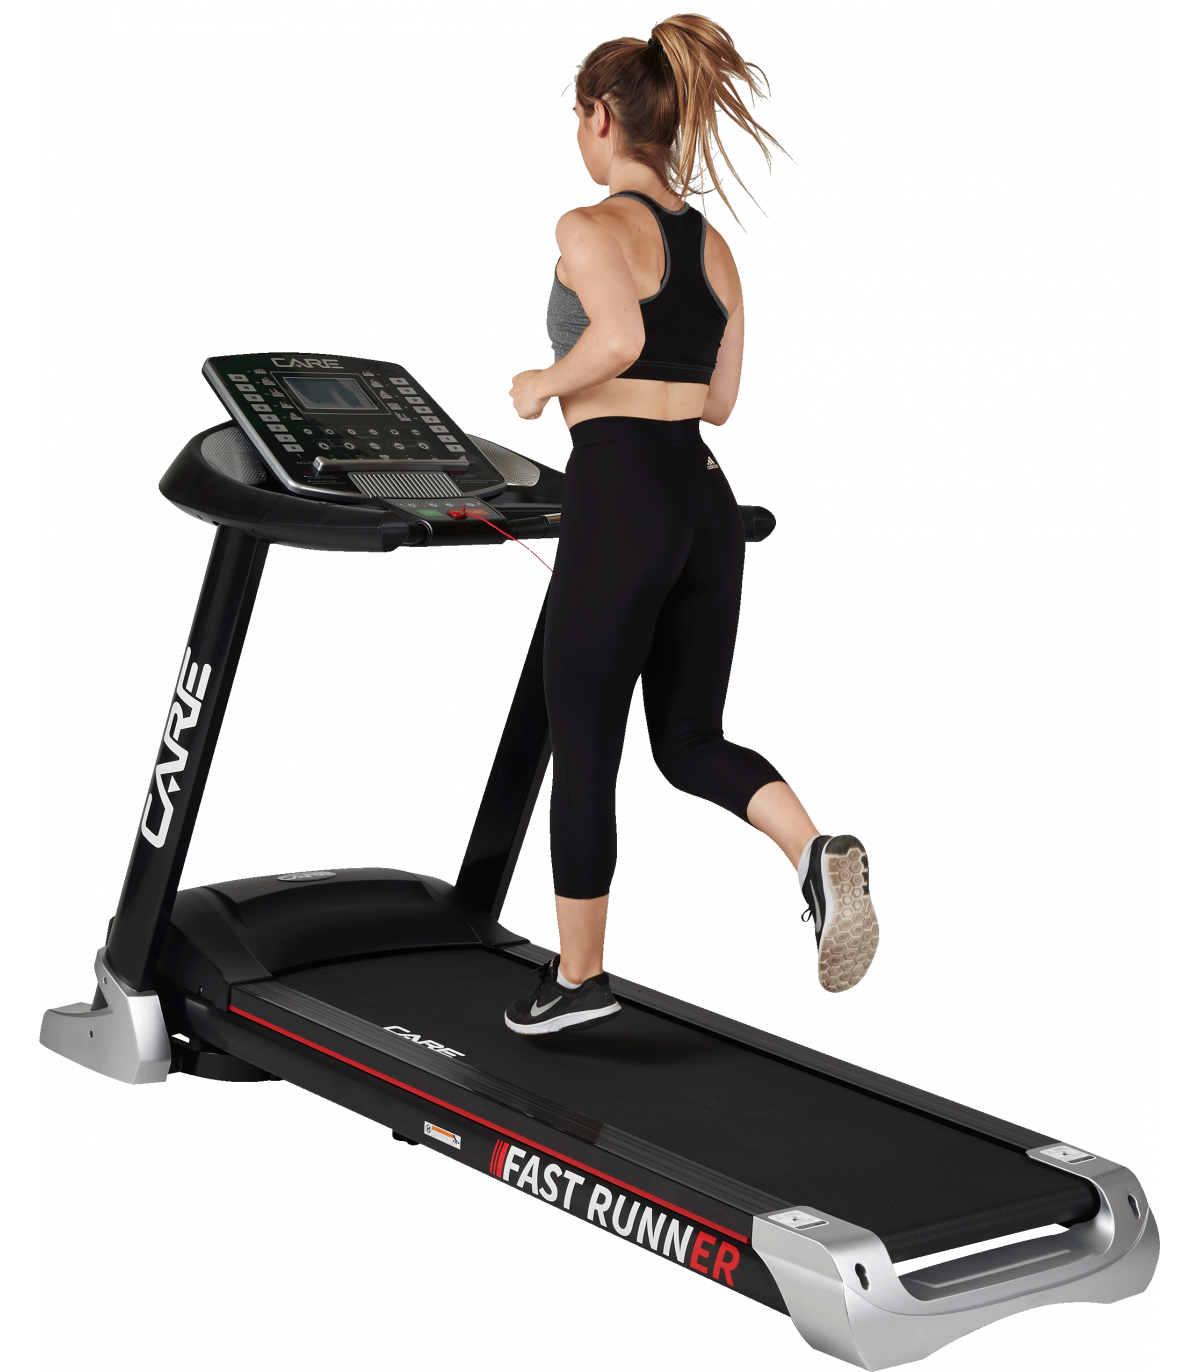 Tapis de course Fast Runner - Care